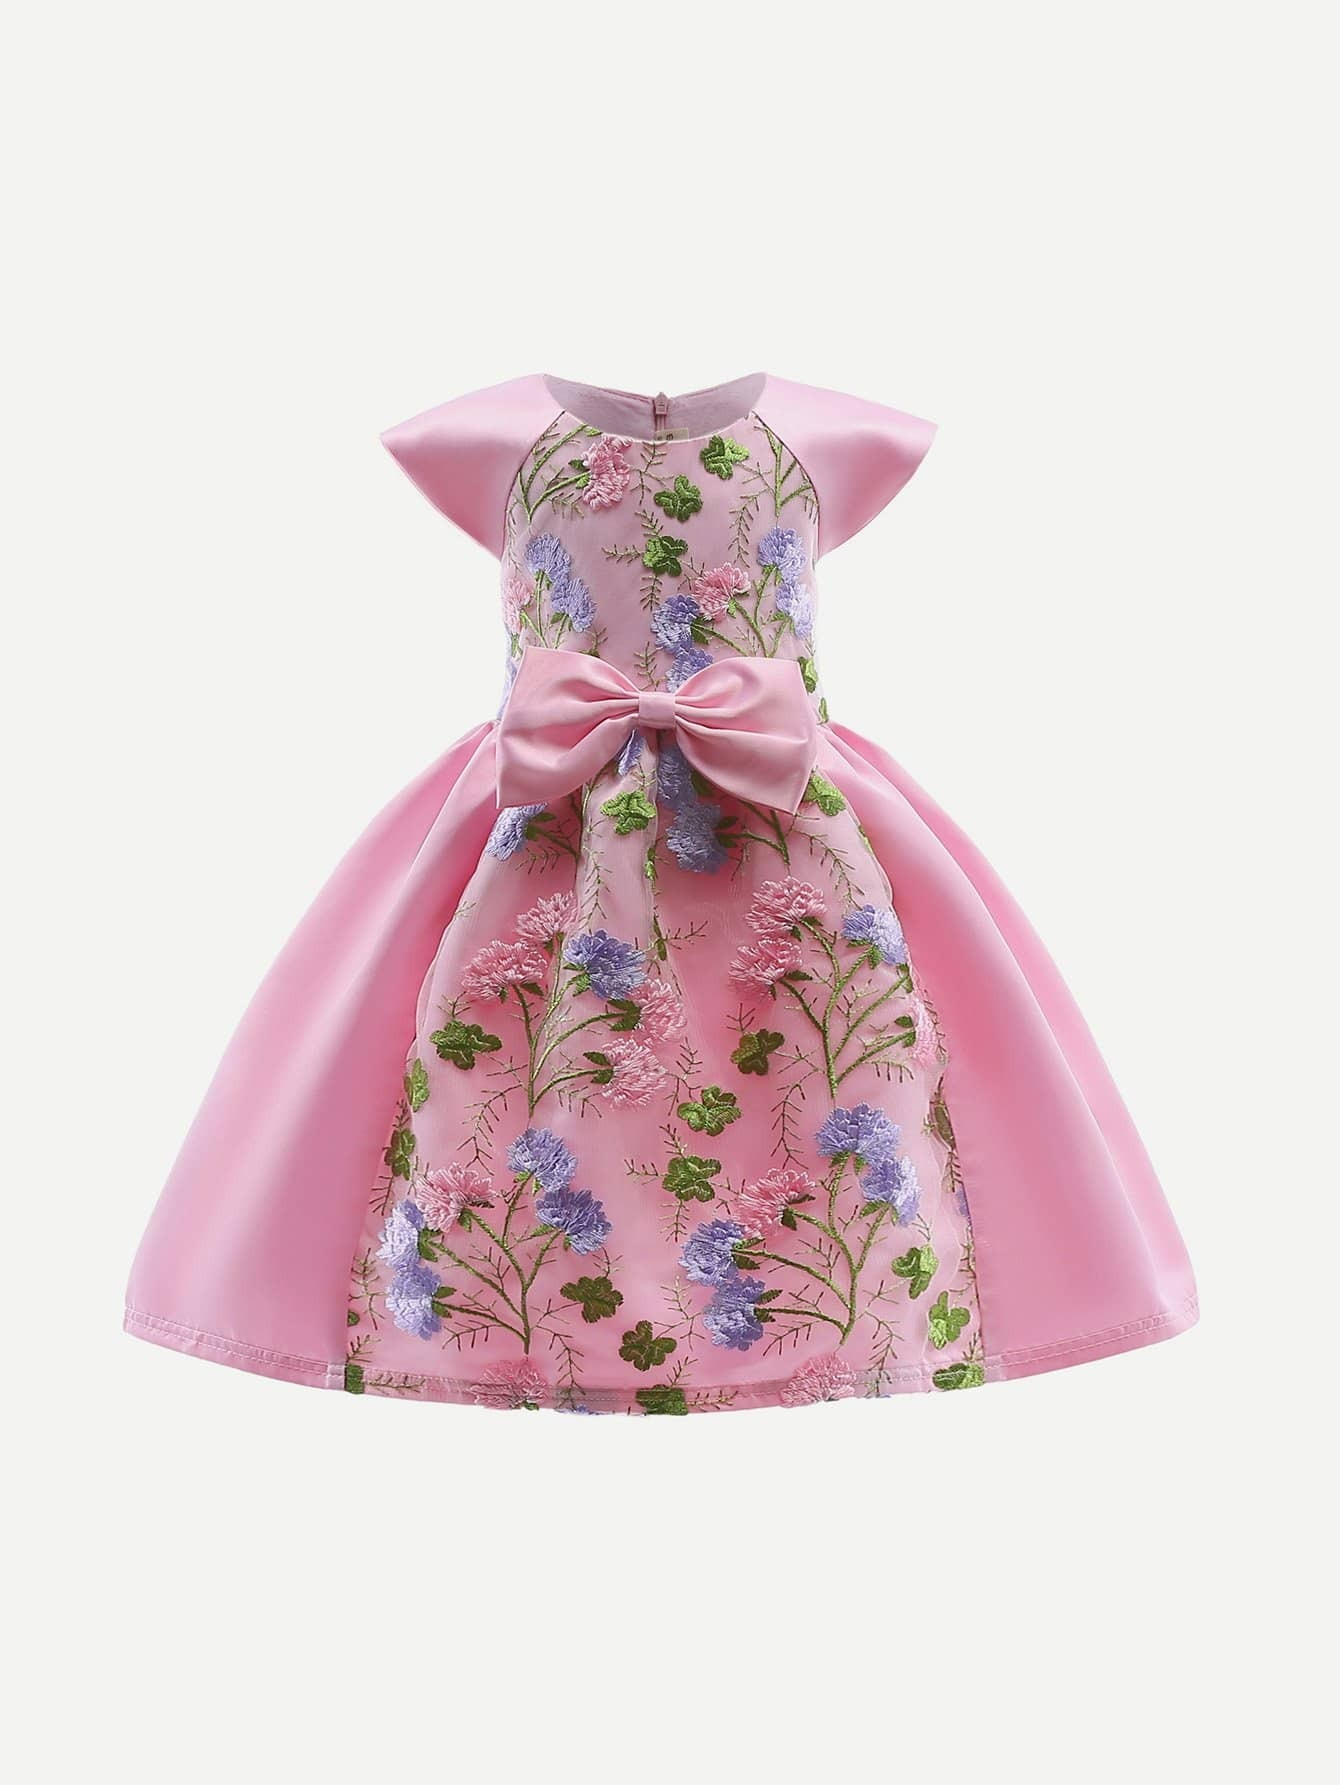 Embroidery Mesh Overlay Bow Tie Ball Gown embroidery mesh ribbon tie dress